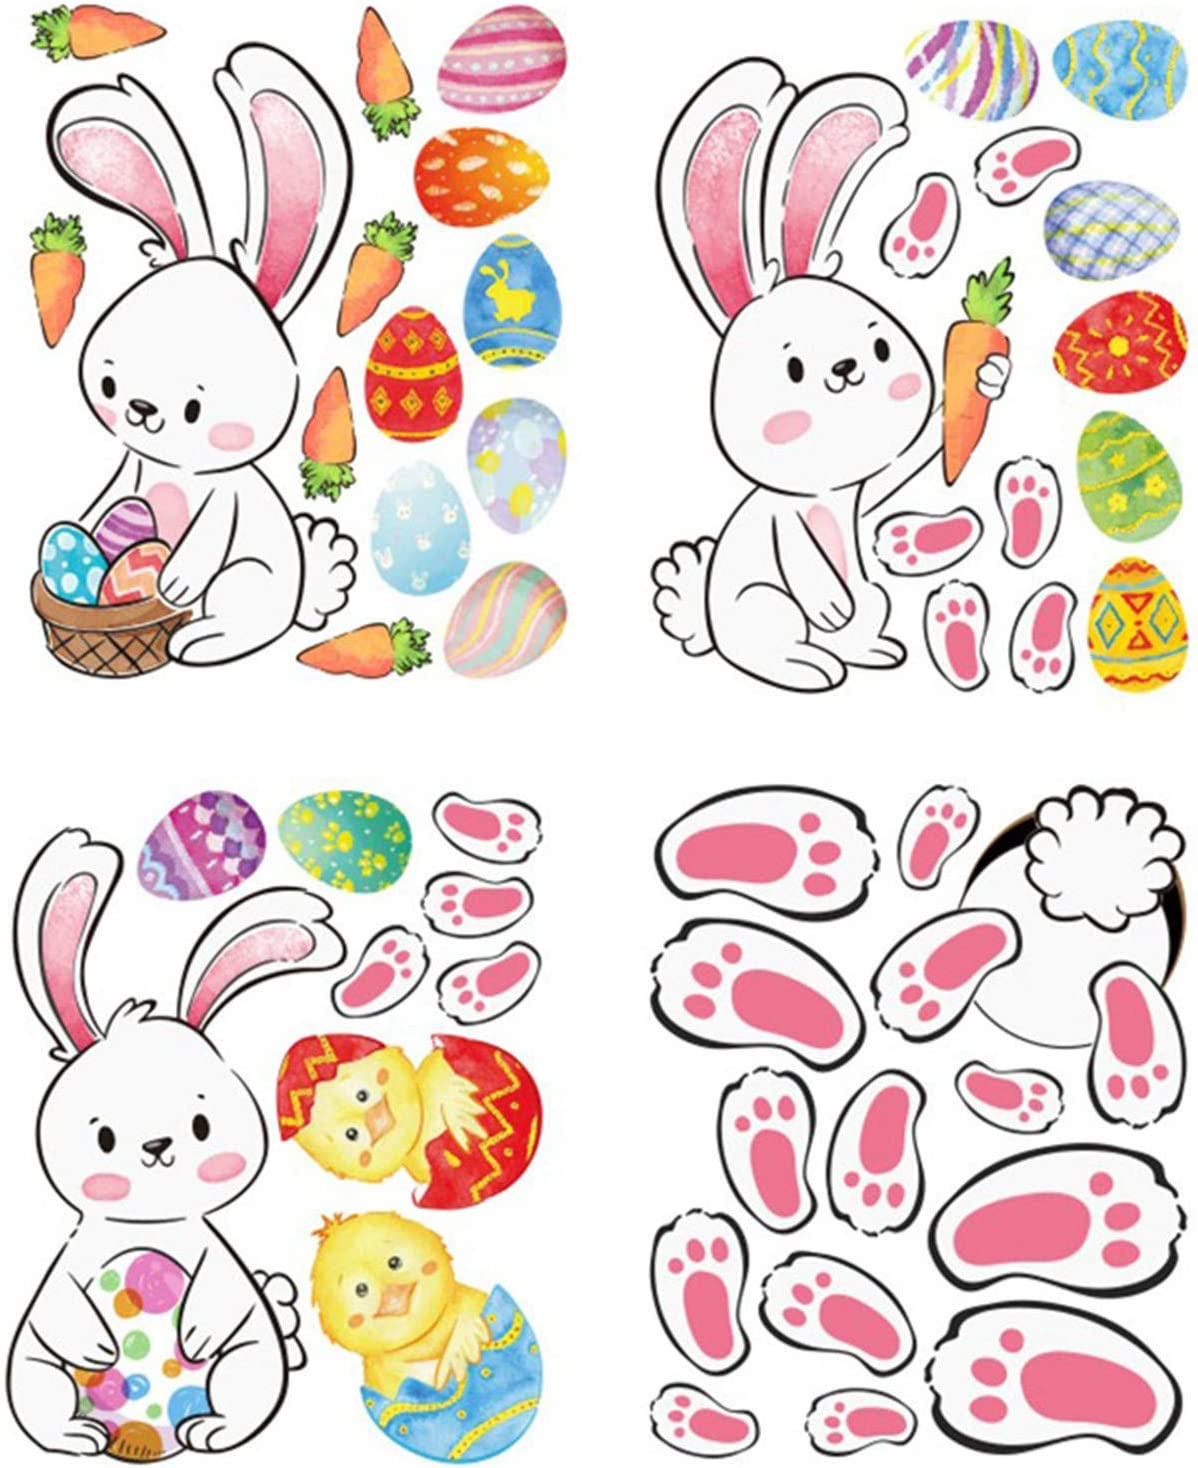 Happy Cheap mail order sales Easter Sticker W Self-Adhesive Party specialty shop